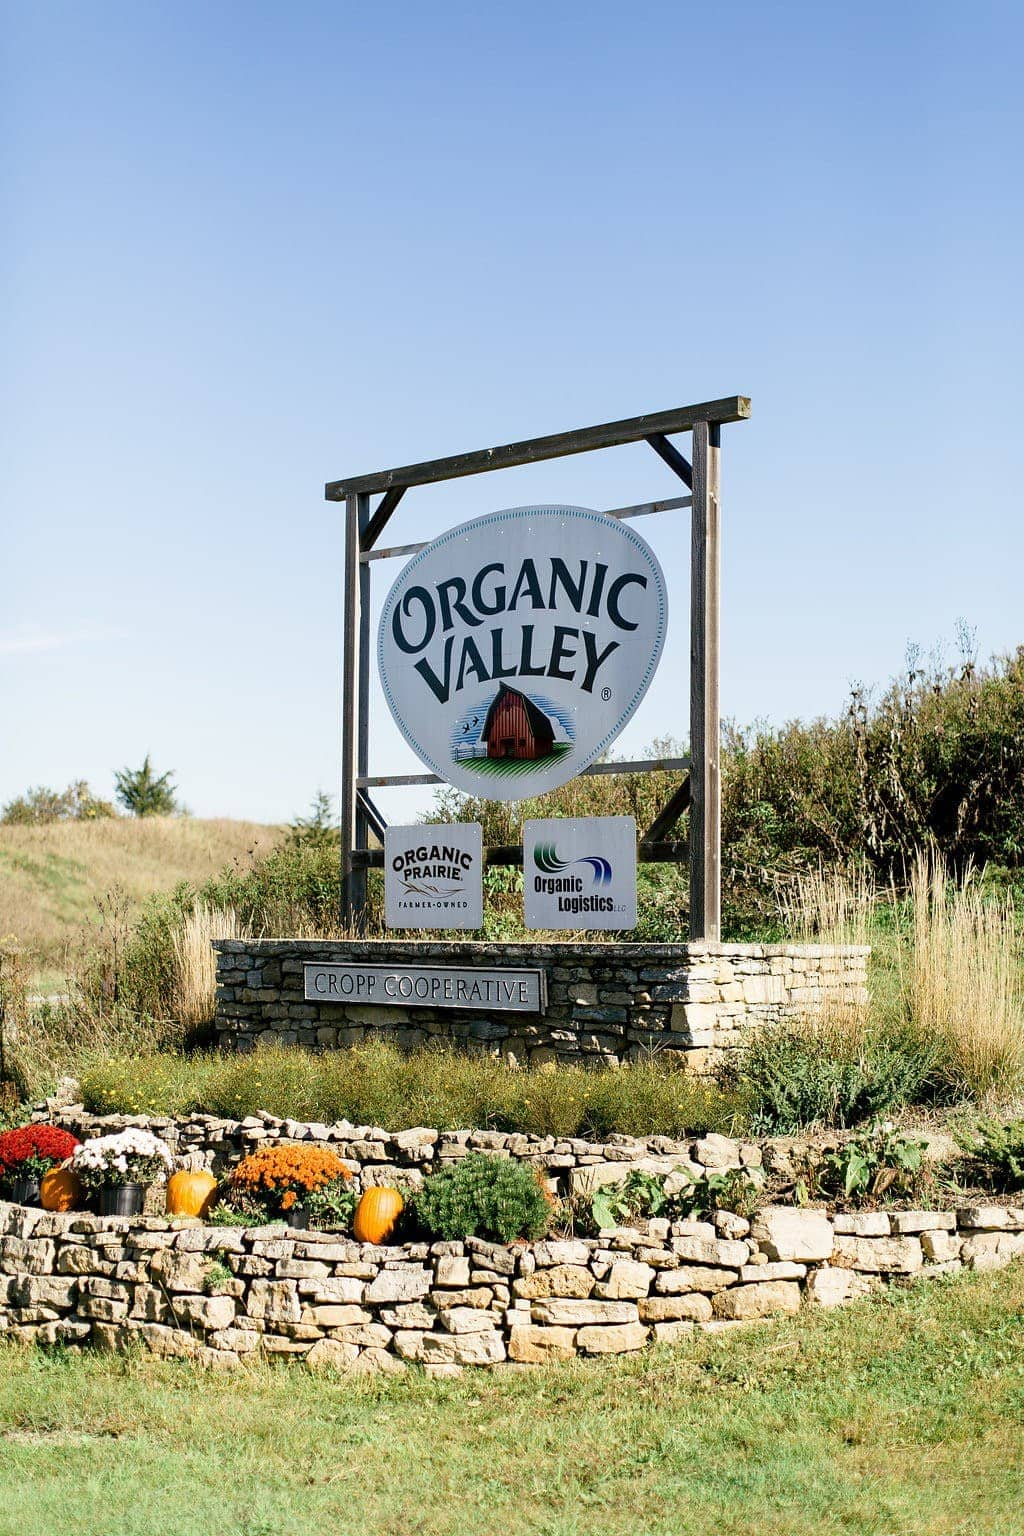 Want to know more about life on an Organic Valley Farm? In this post, you'll learn all about why we love Organic Valley Coop, as well as what it's like to run an Organic Valley Farm!